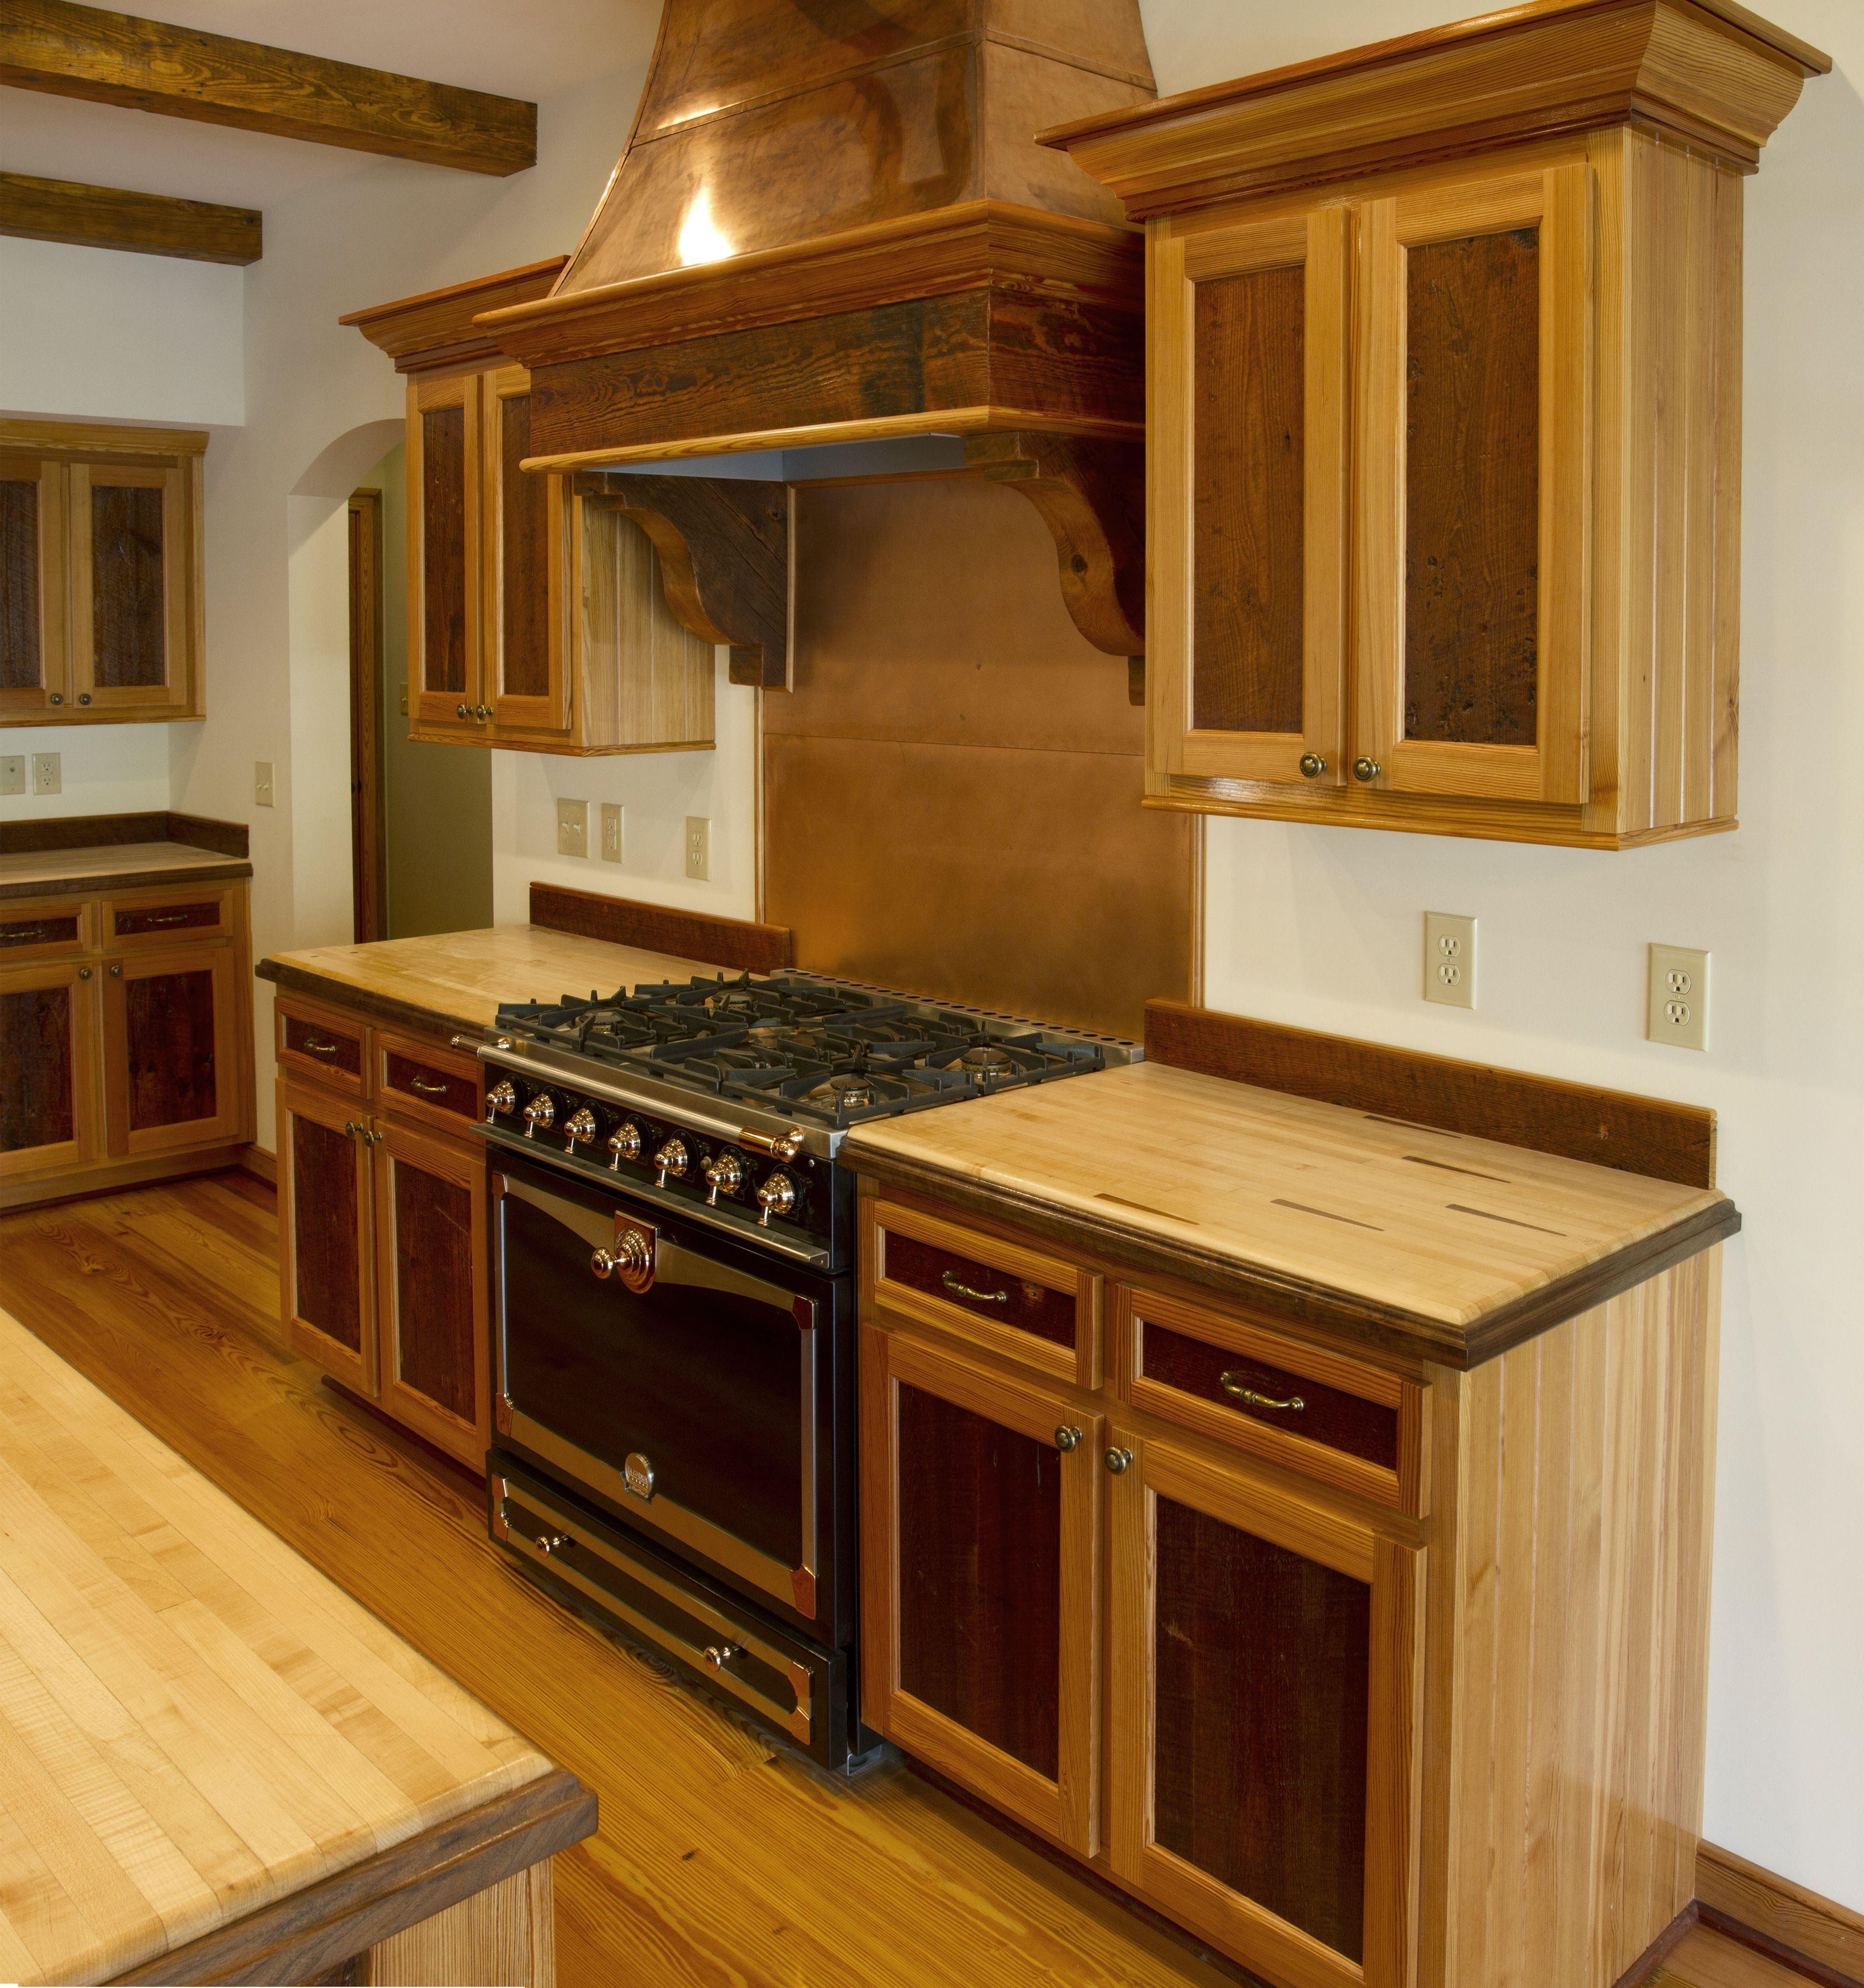 Rustic Pine Kitchen Cabinets: Kitchen Cabinet Styles, Pine